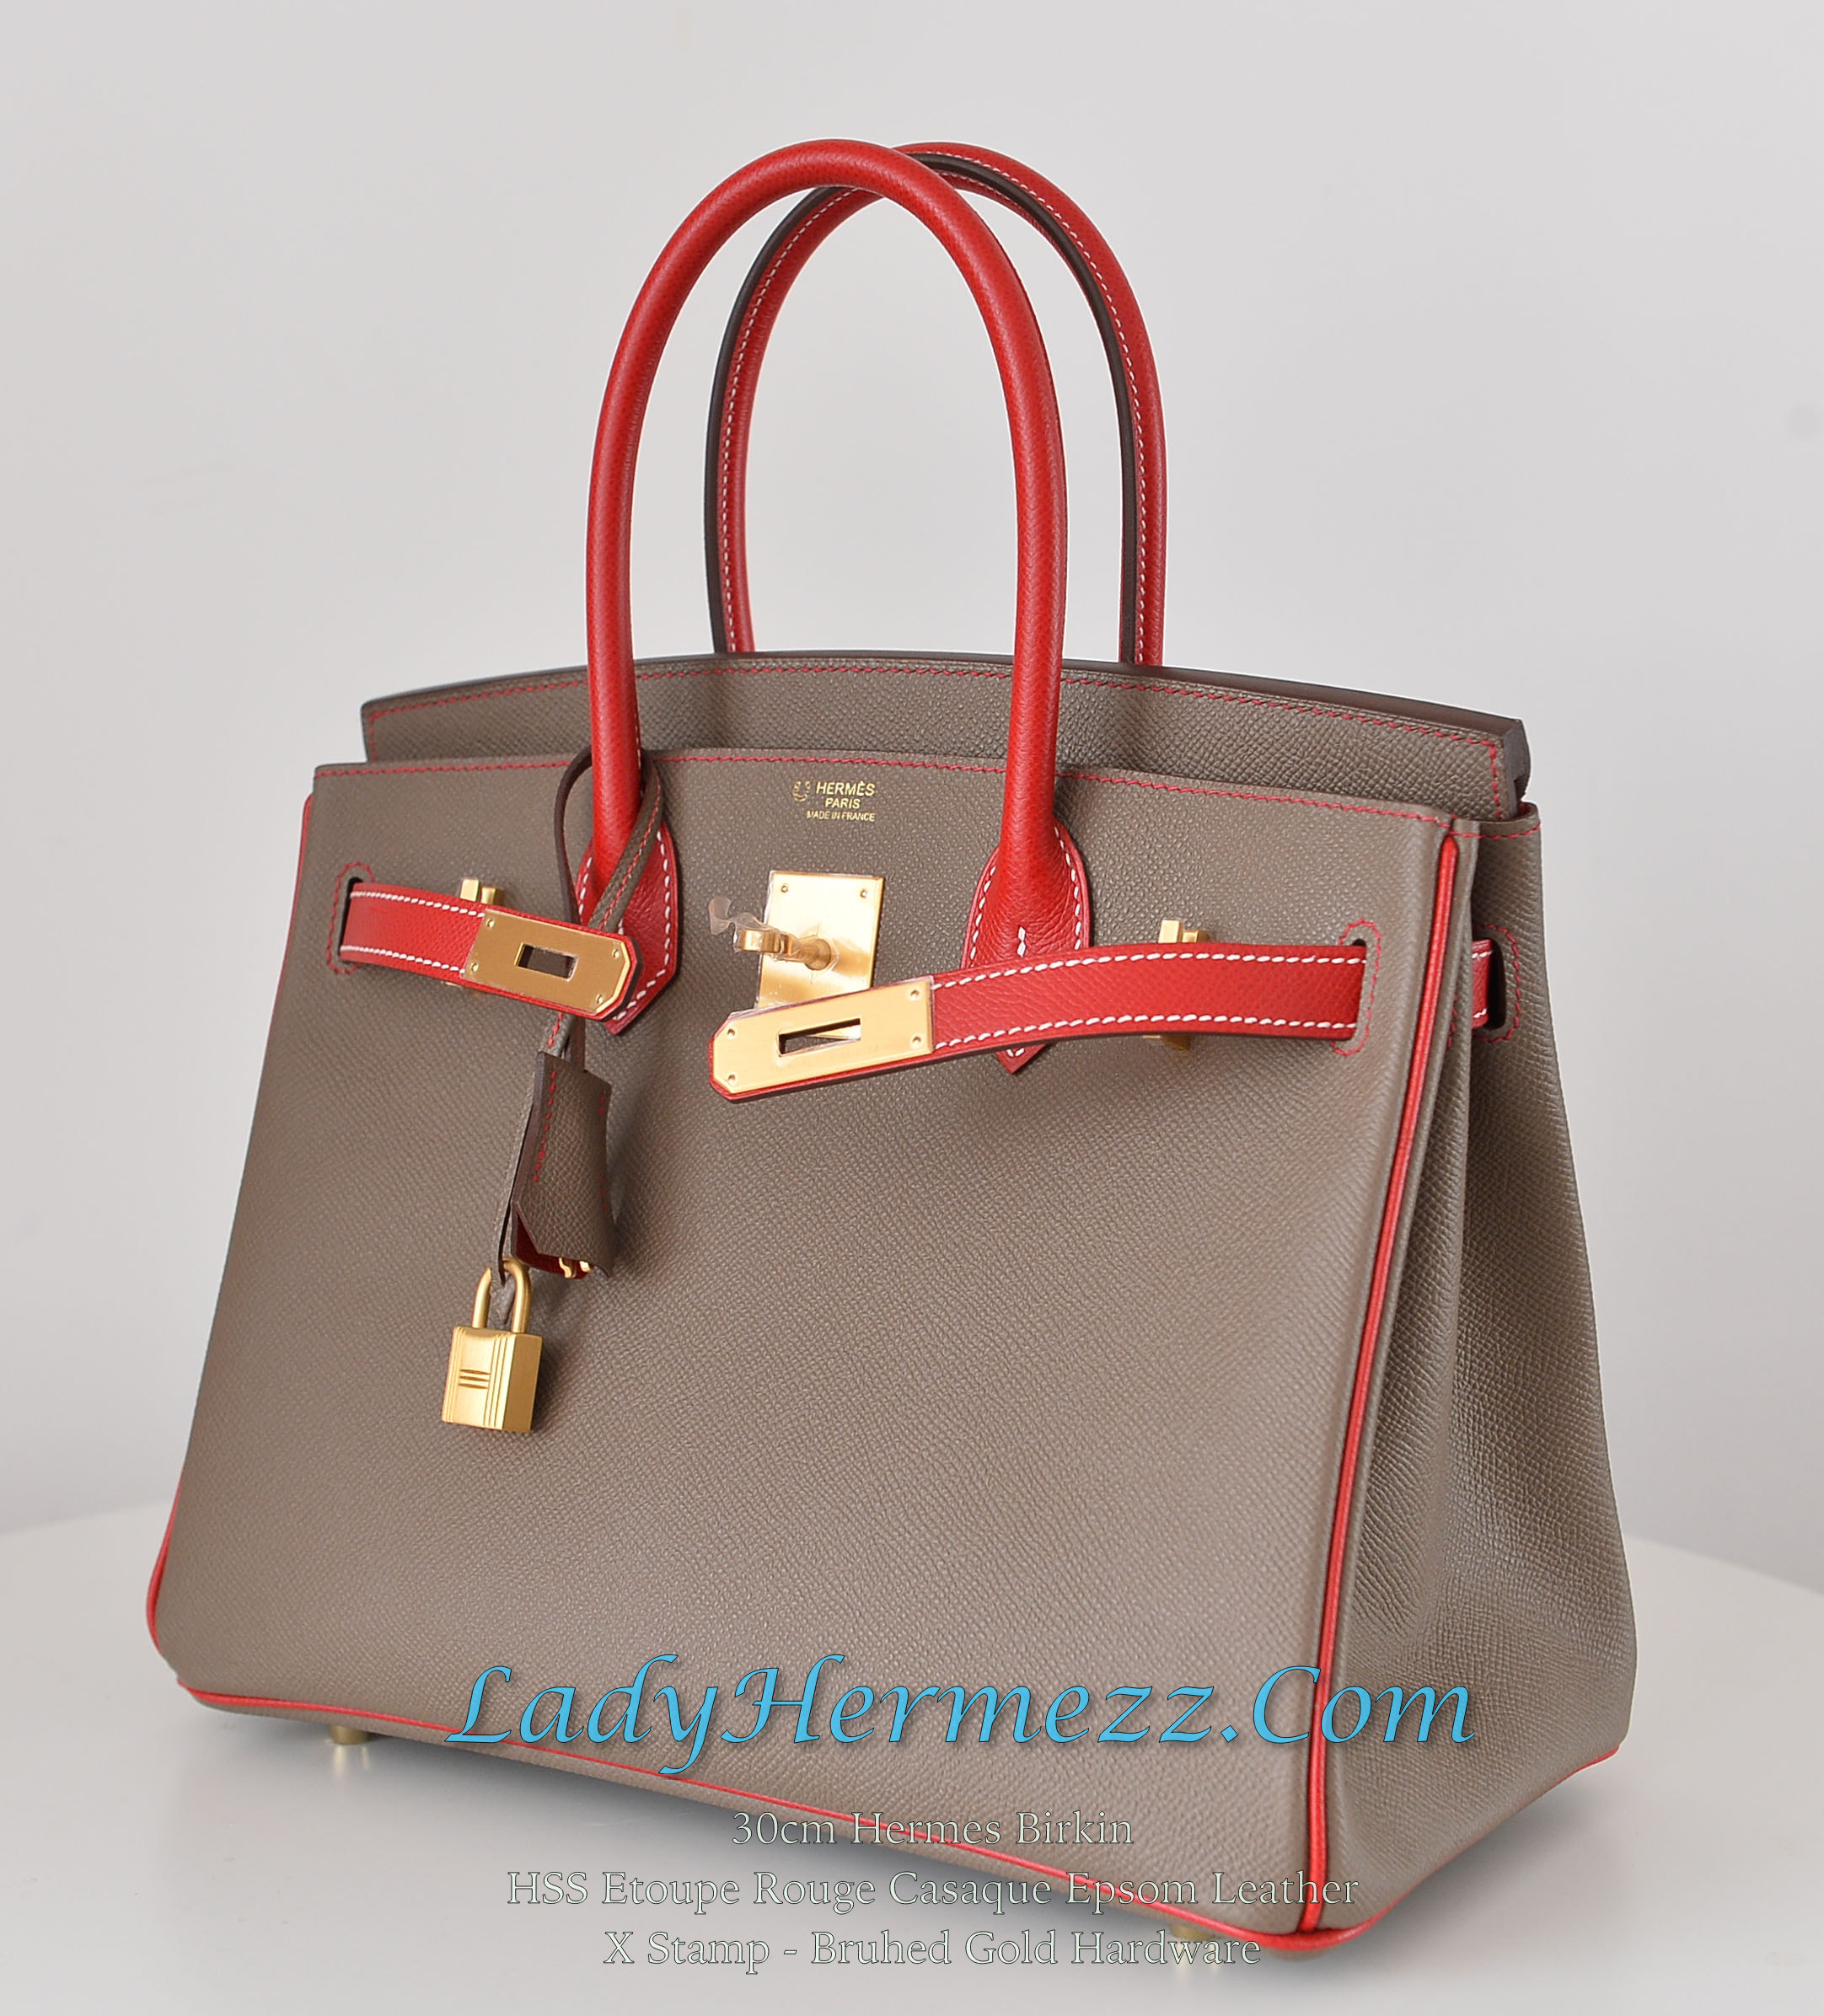 96713566a302 AVAILABLE Hermes Birkins bags Archives - LadyHermezz.Com